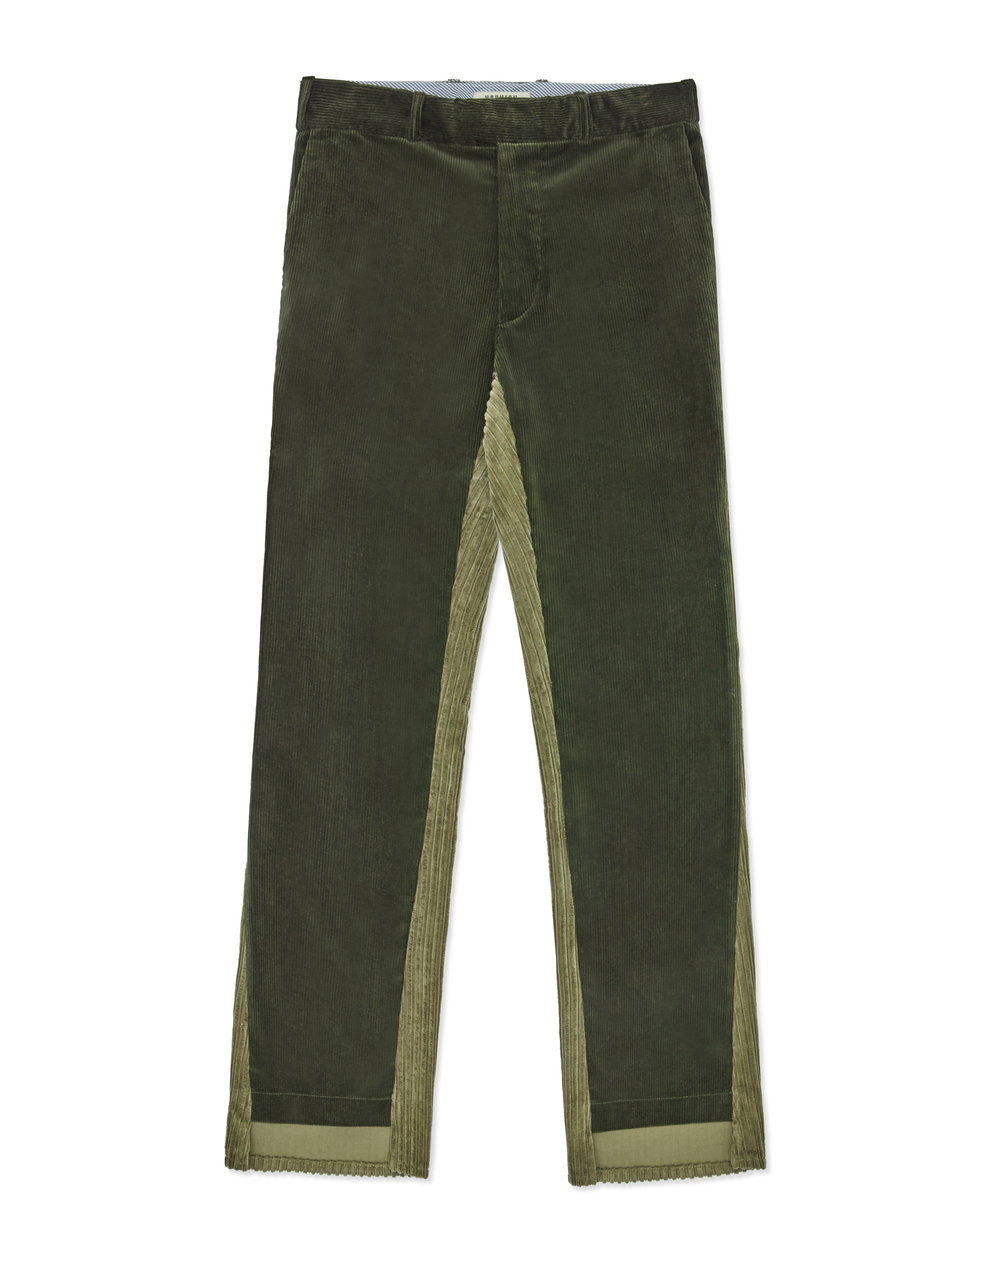 C2-P_04G_Elongated Flared Corduroy Trousers_01.jpg